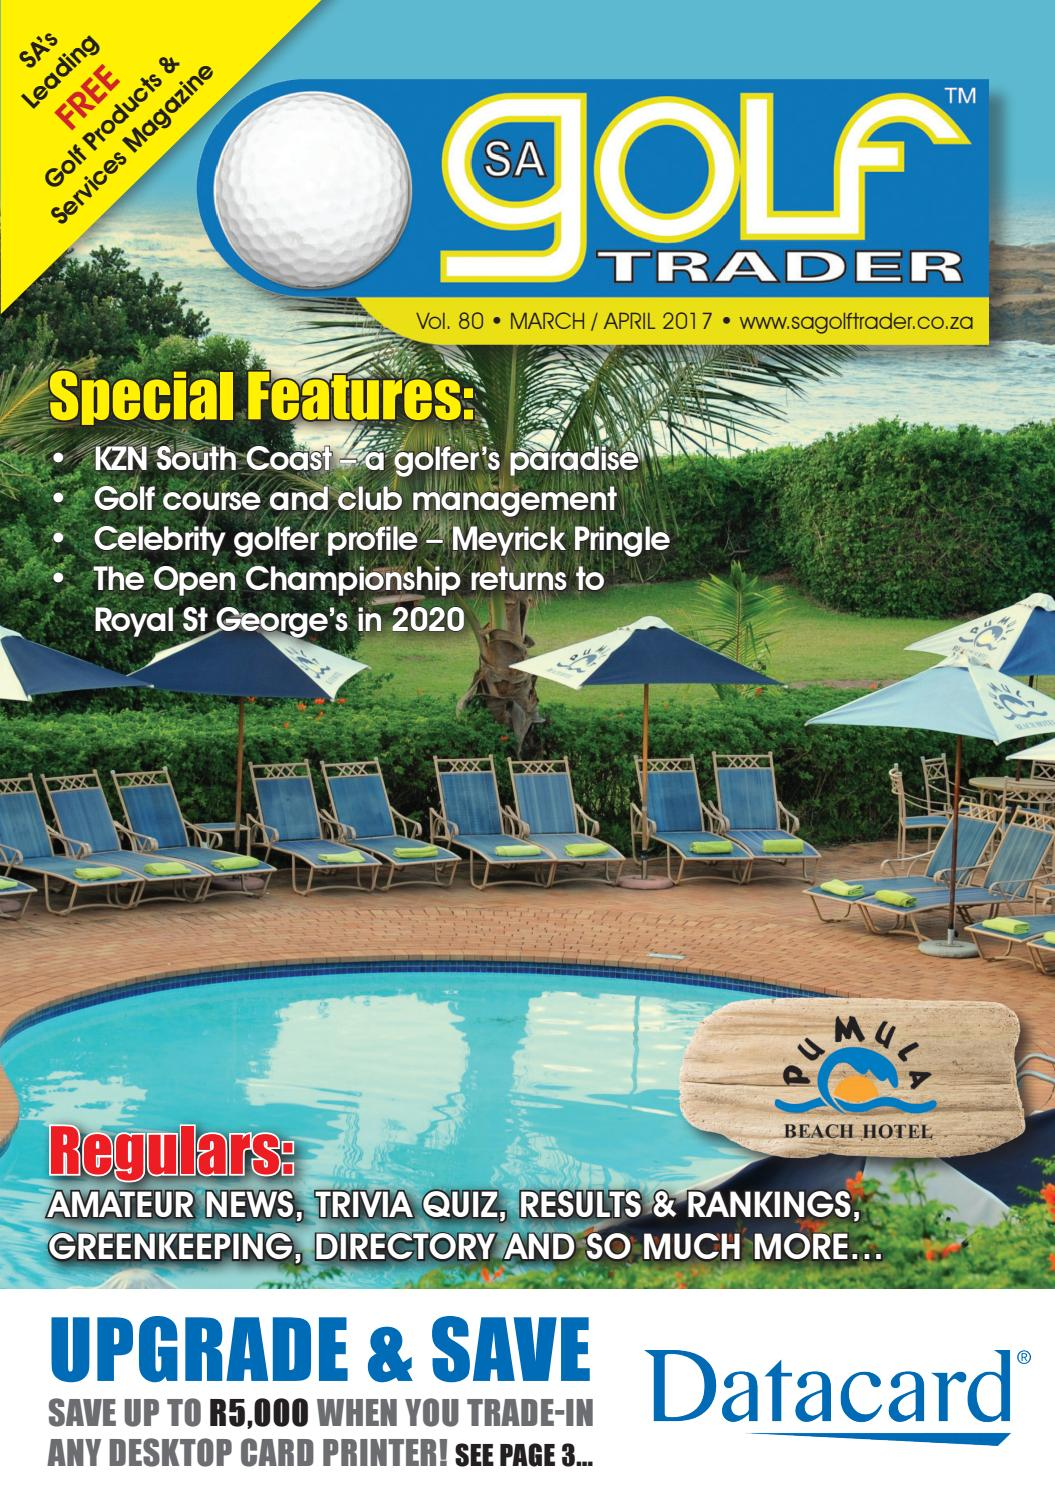 SA's Leading FREE Golf Products & Services Magazine: Powered by Print, Digital & Social Media.